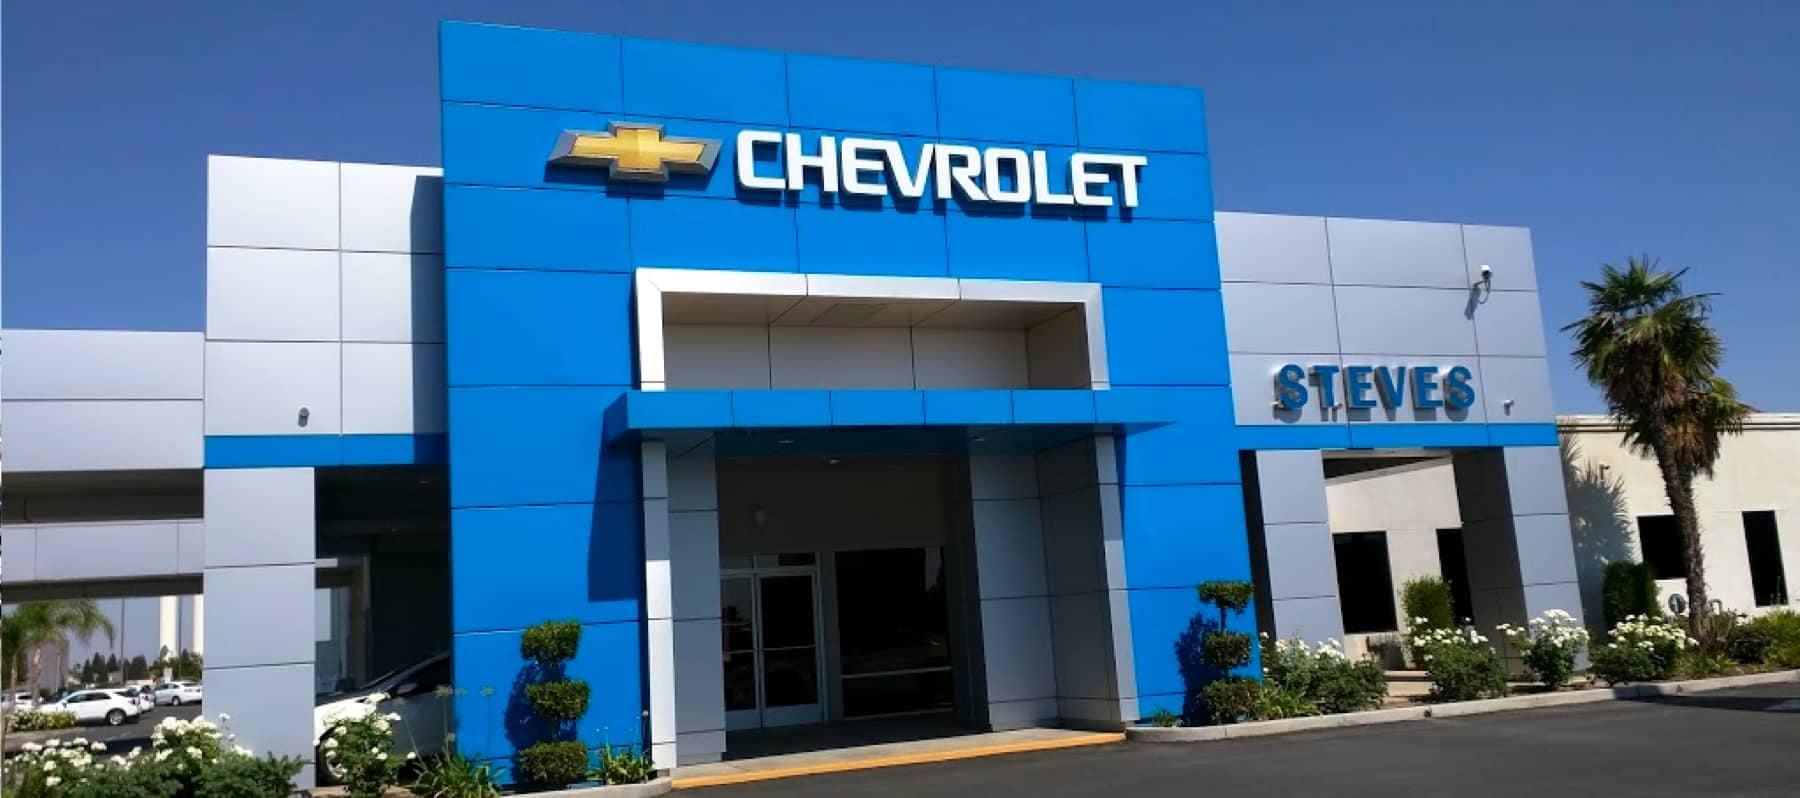 An exterior shot of a Chevrolet dealership.